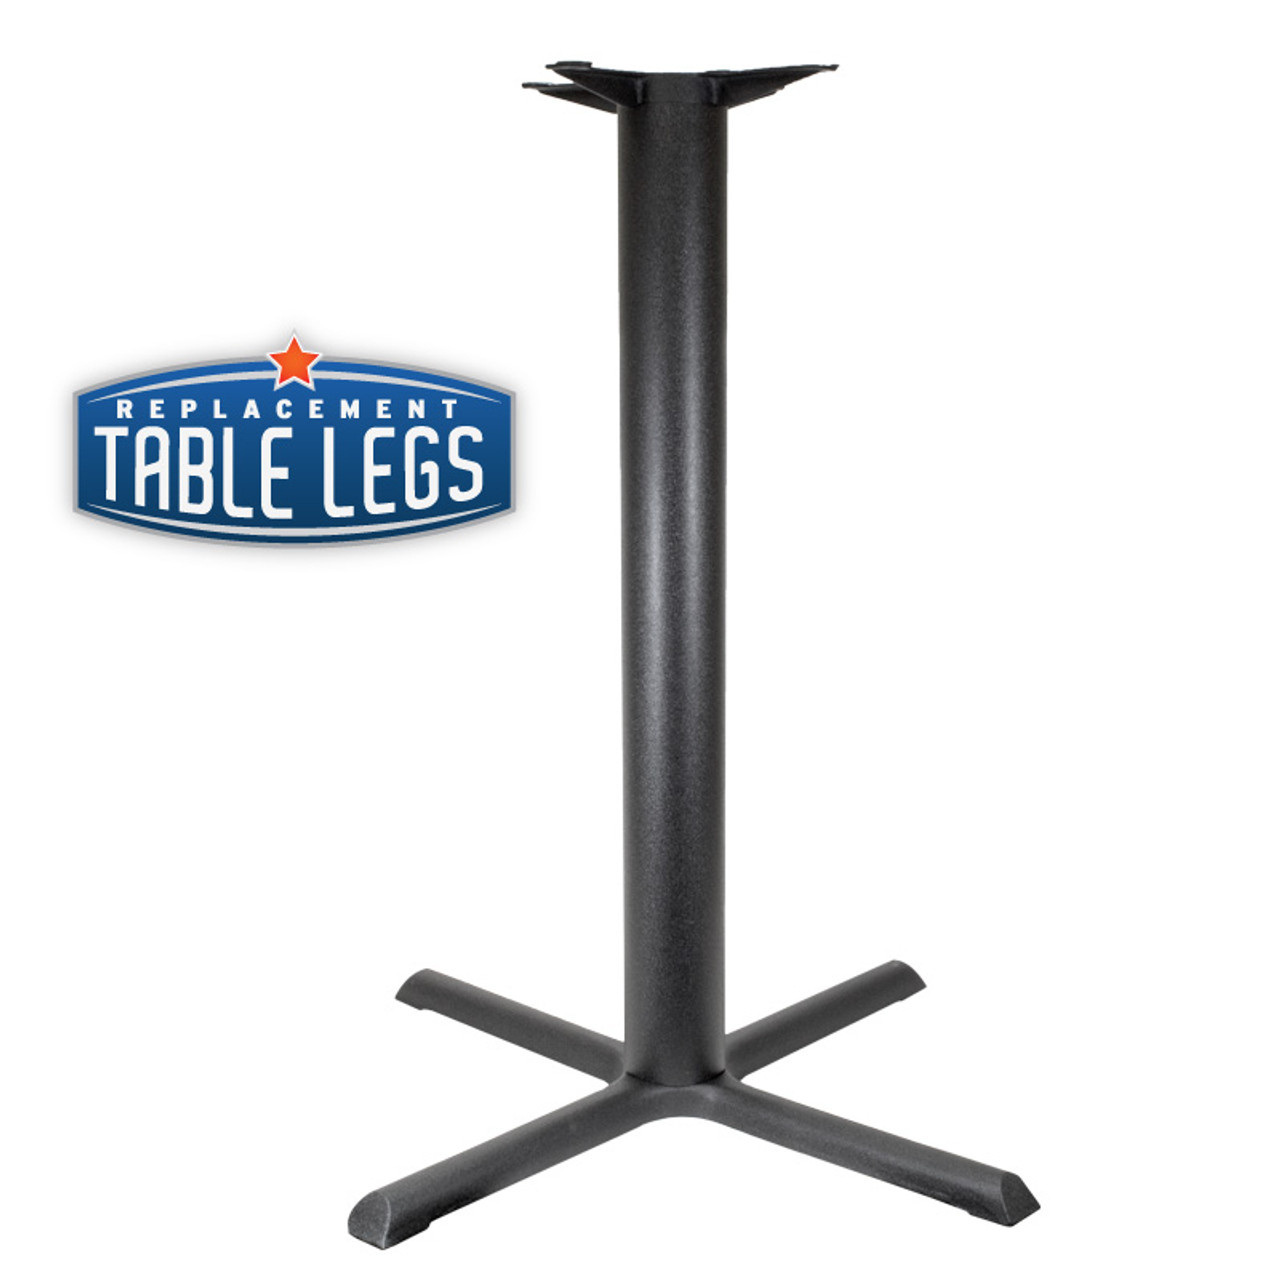 "CAST IRON TABLE BASE, X Style 30""x30"", 40"" height, 3"" diameter steel column - replacementtablelegs.com"